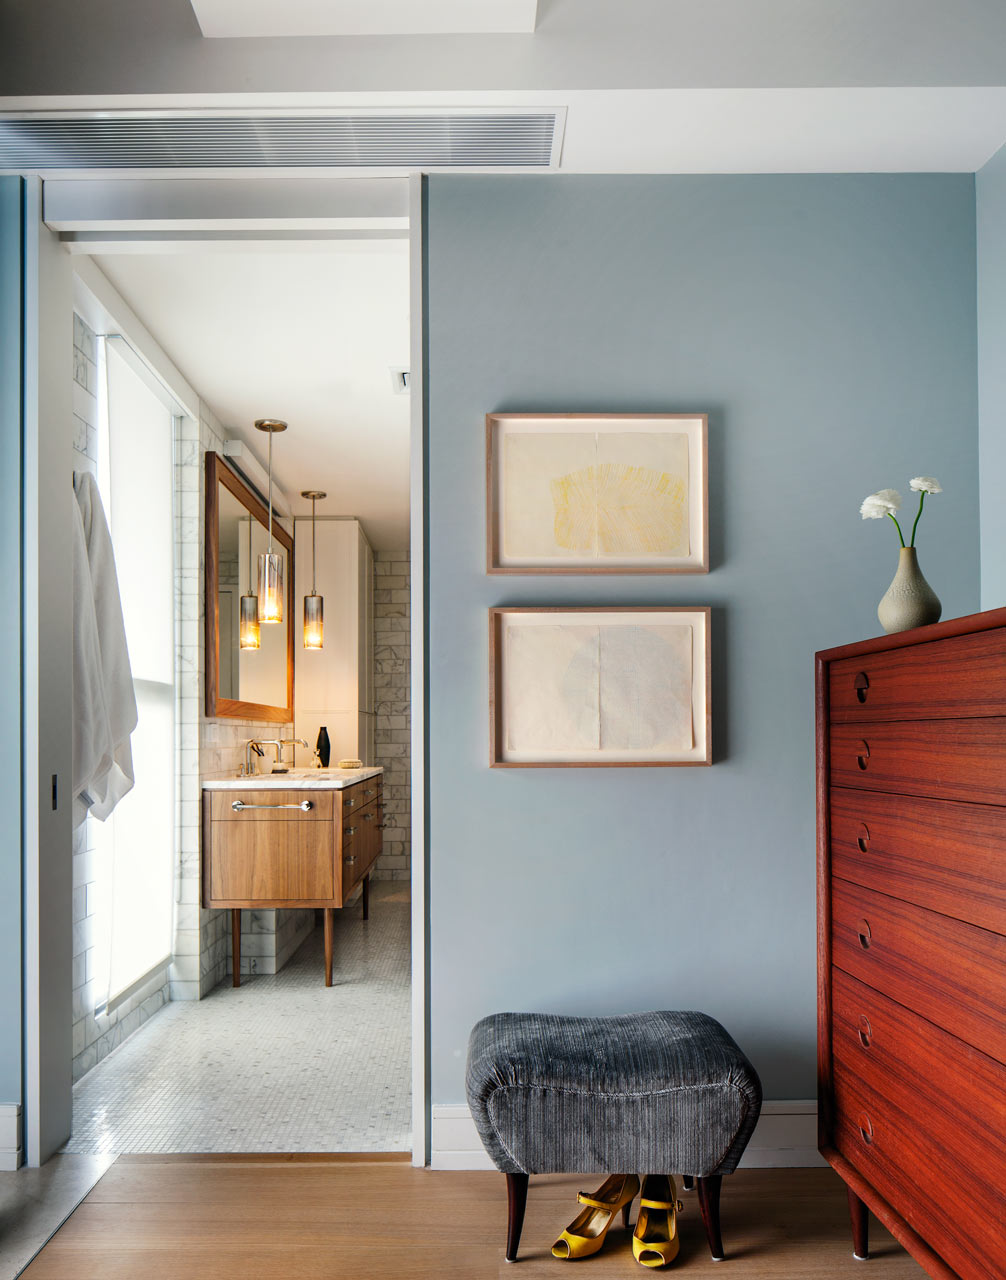 66-9th-Ave-EcoFriendly-Apt-15-master-bed-bath